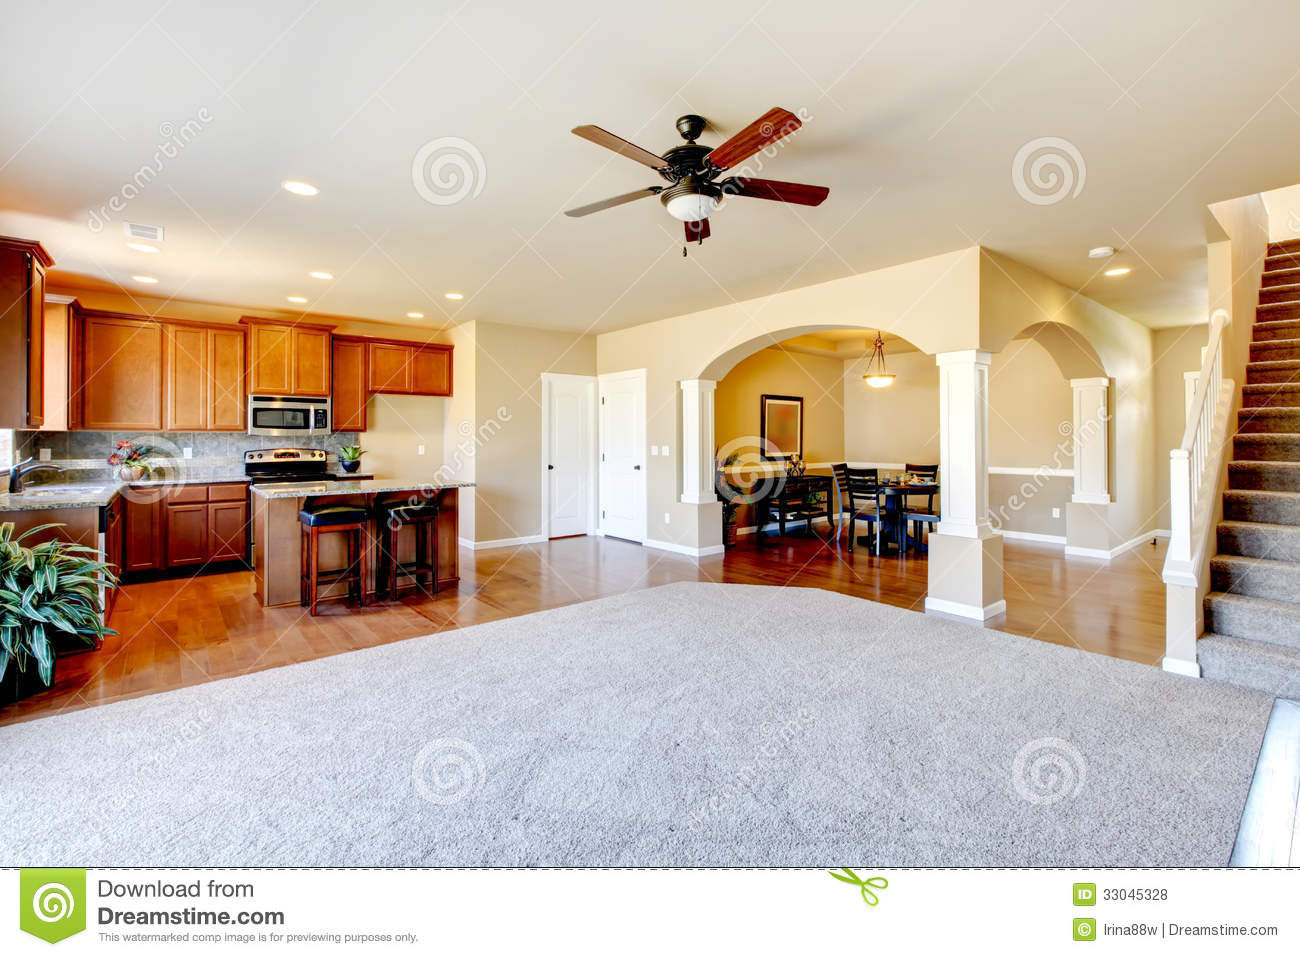 New home kitchen interior and living room interior royalty free stock photos image 33045328 - Interior home image ...